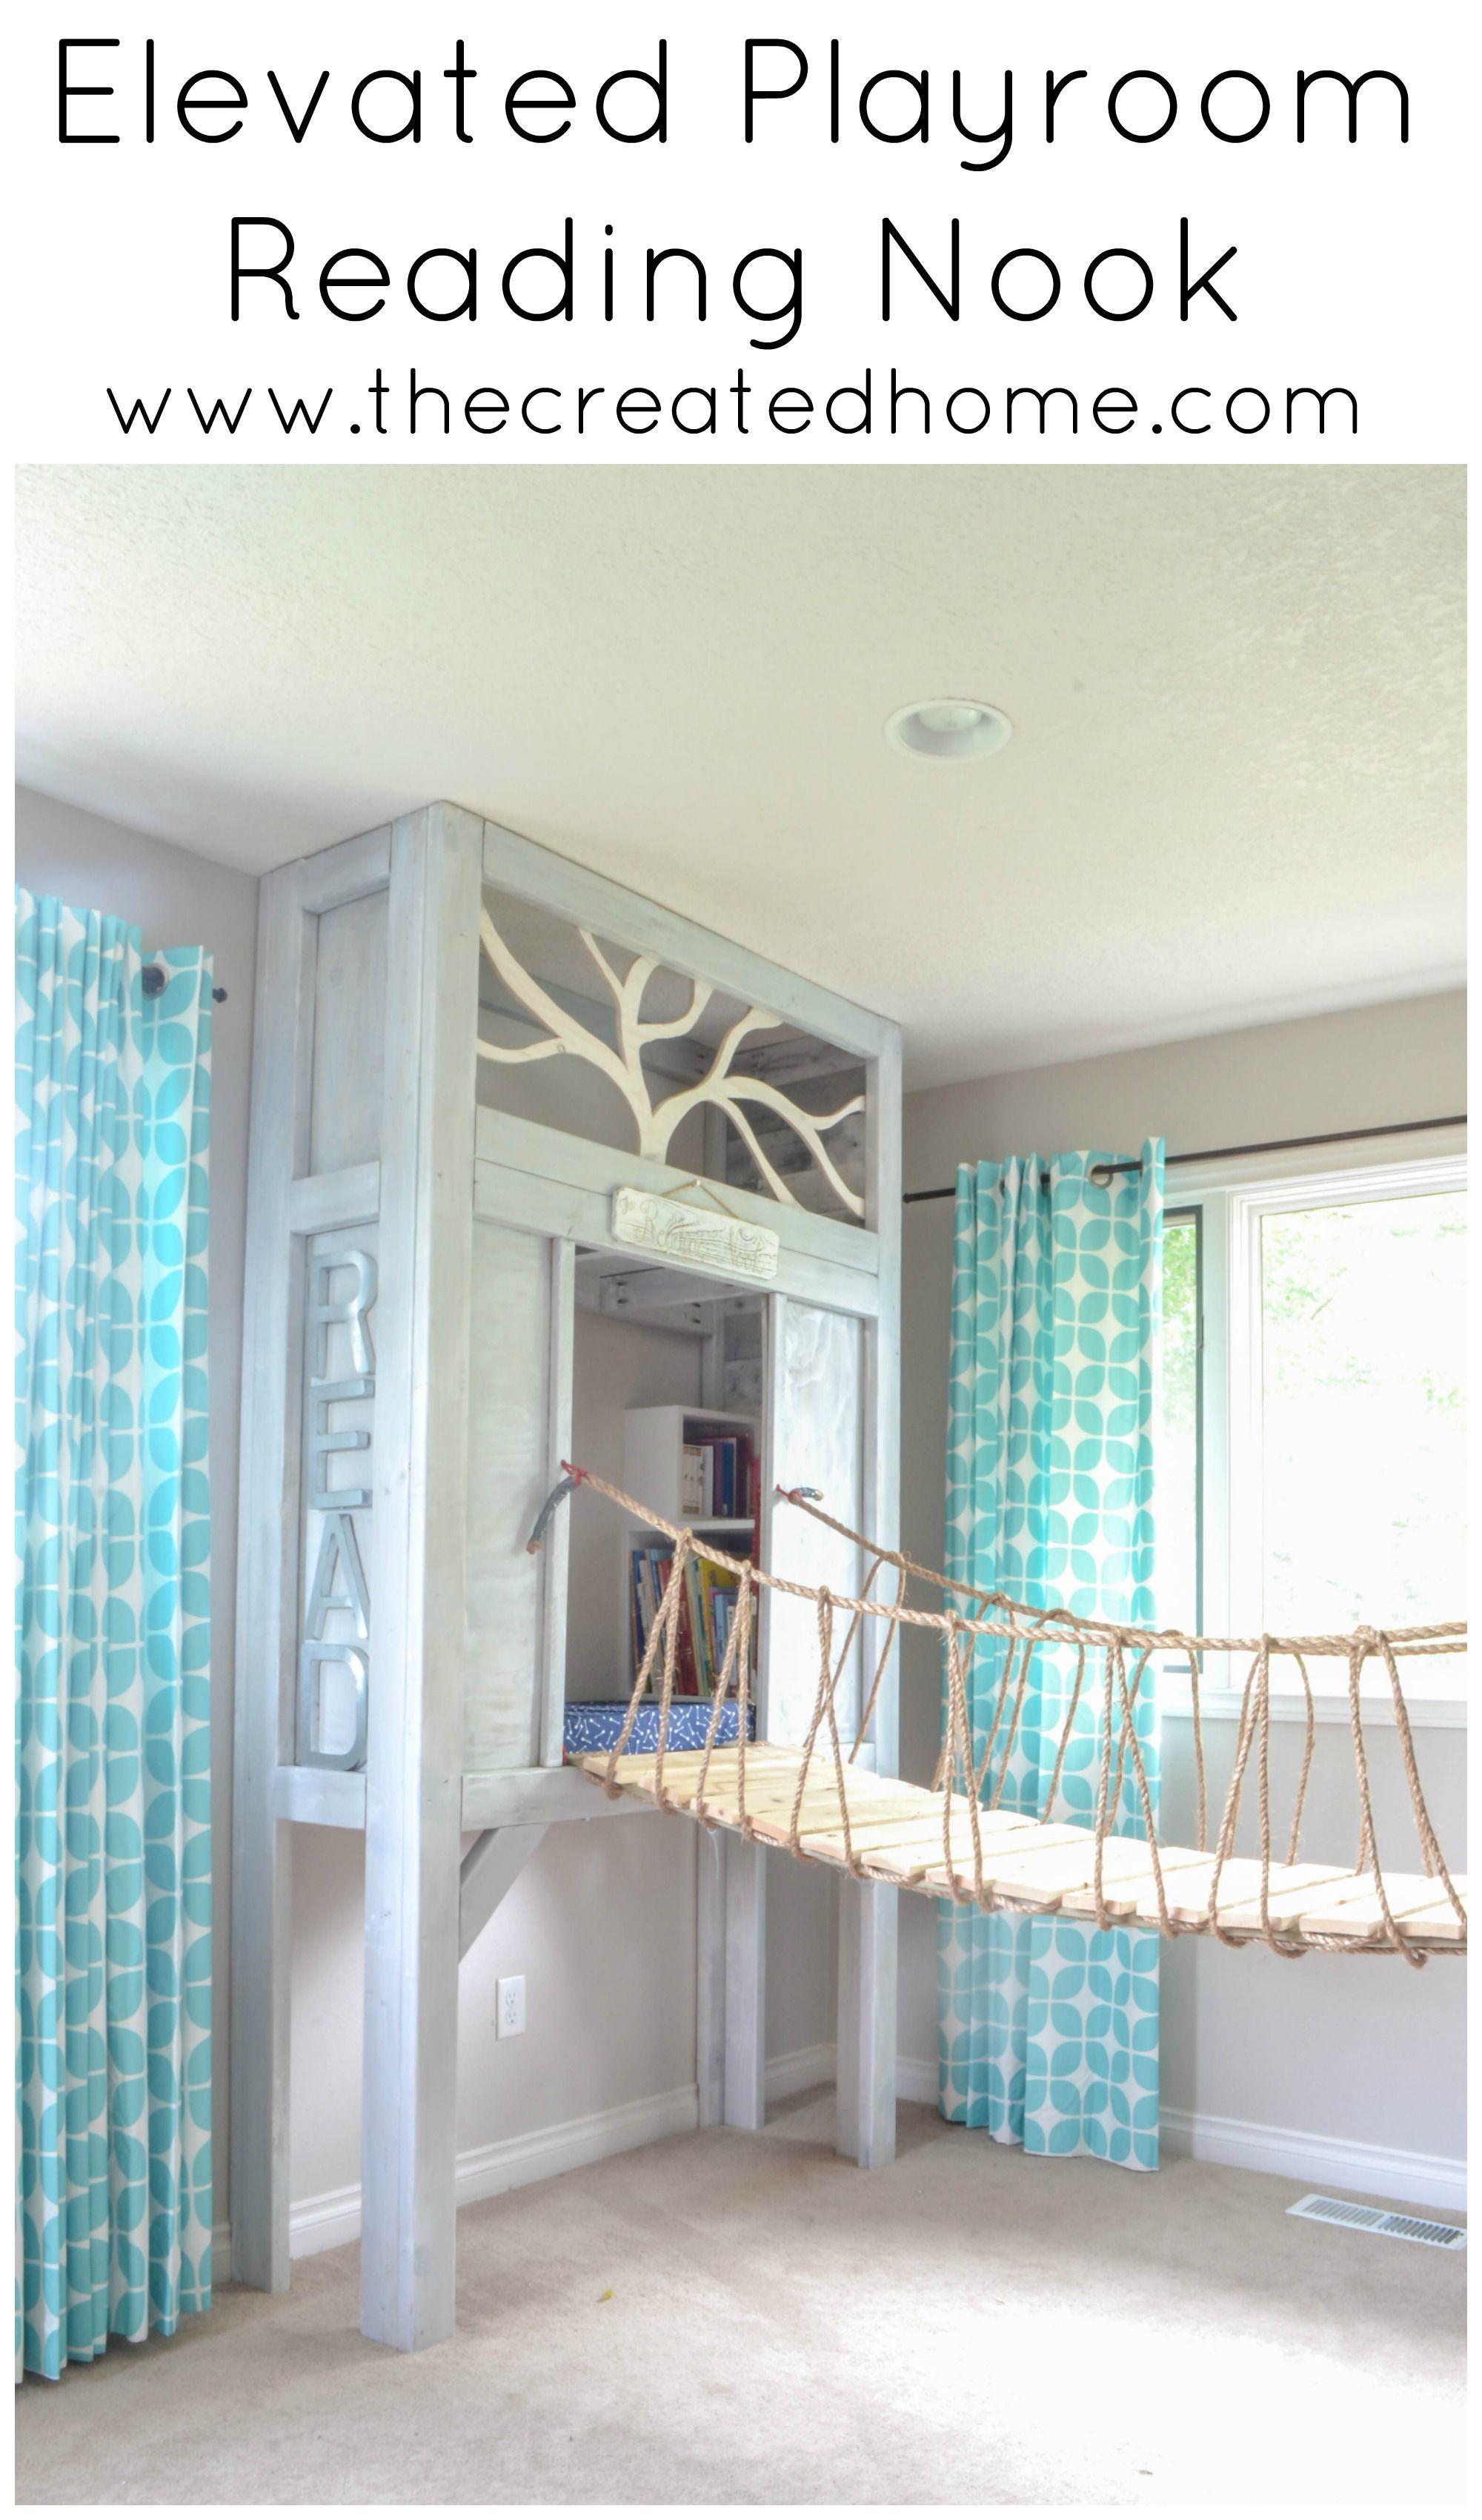 √ 25+ Amazing Girls Room Decor Ideas for Teenagers | Pinterest ...